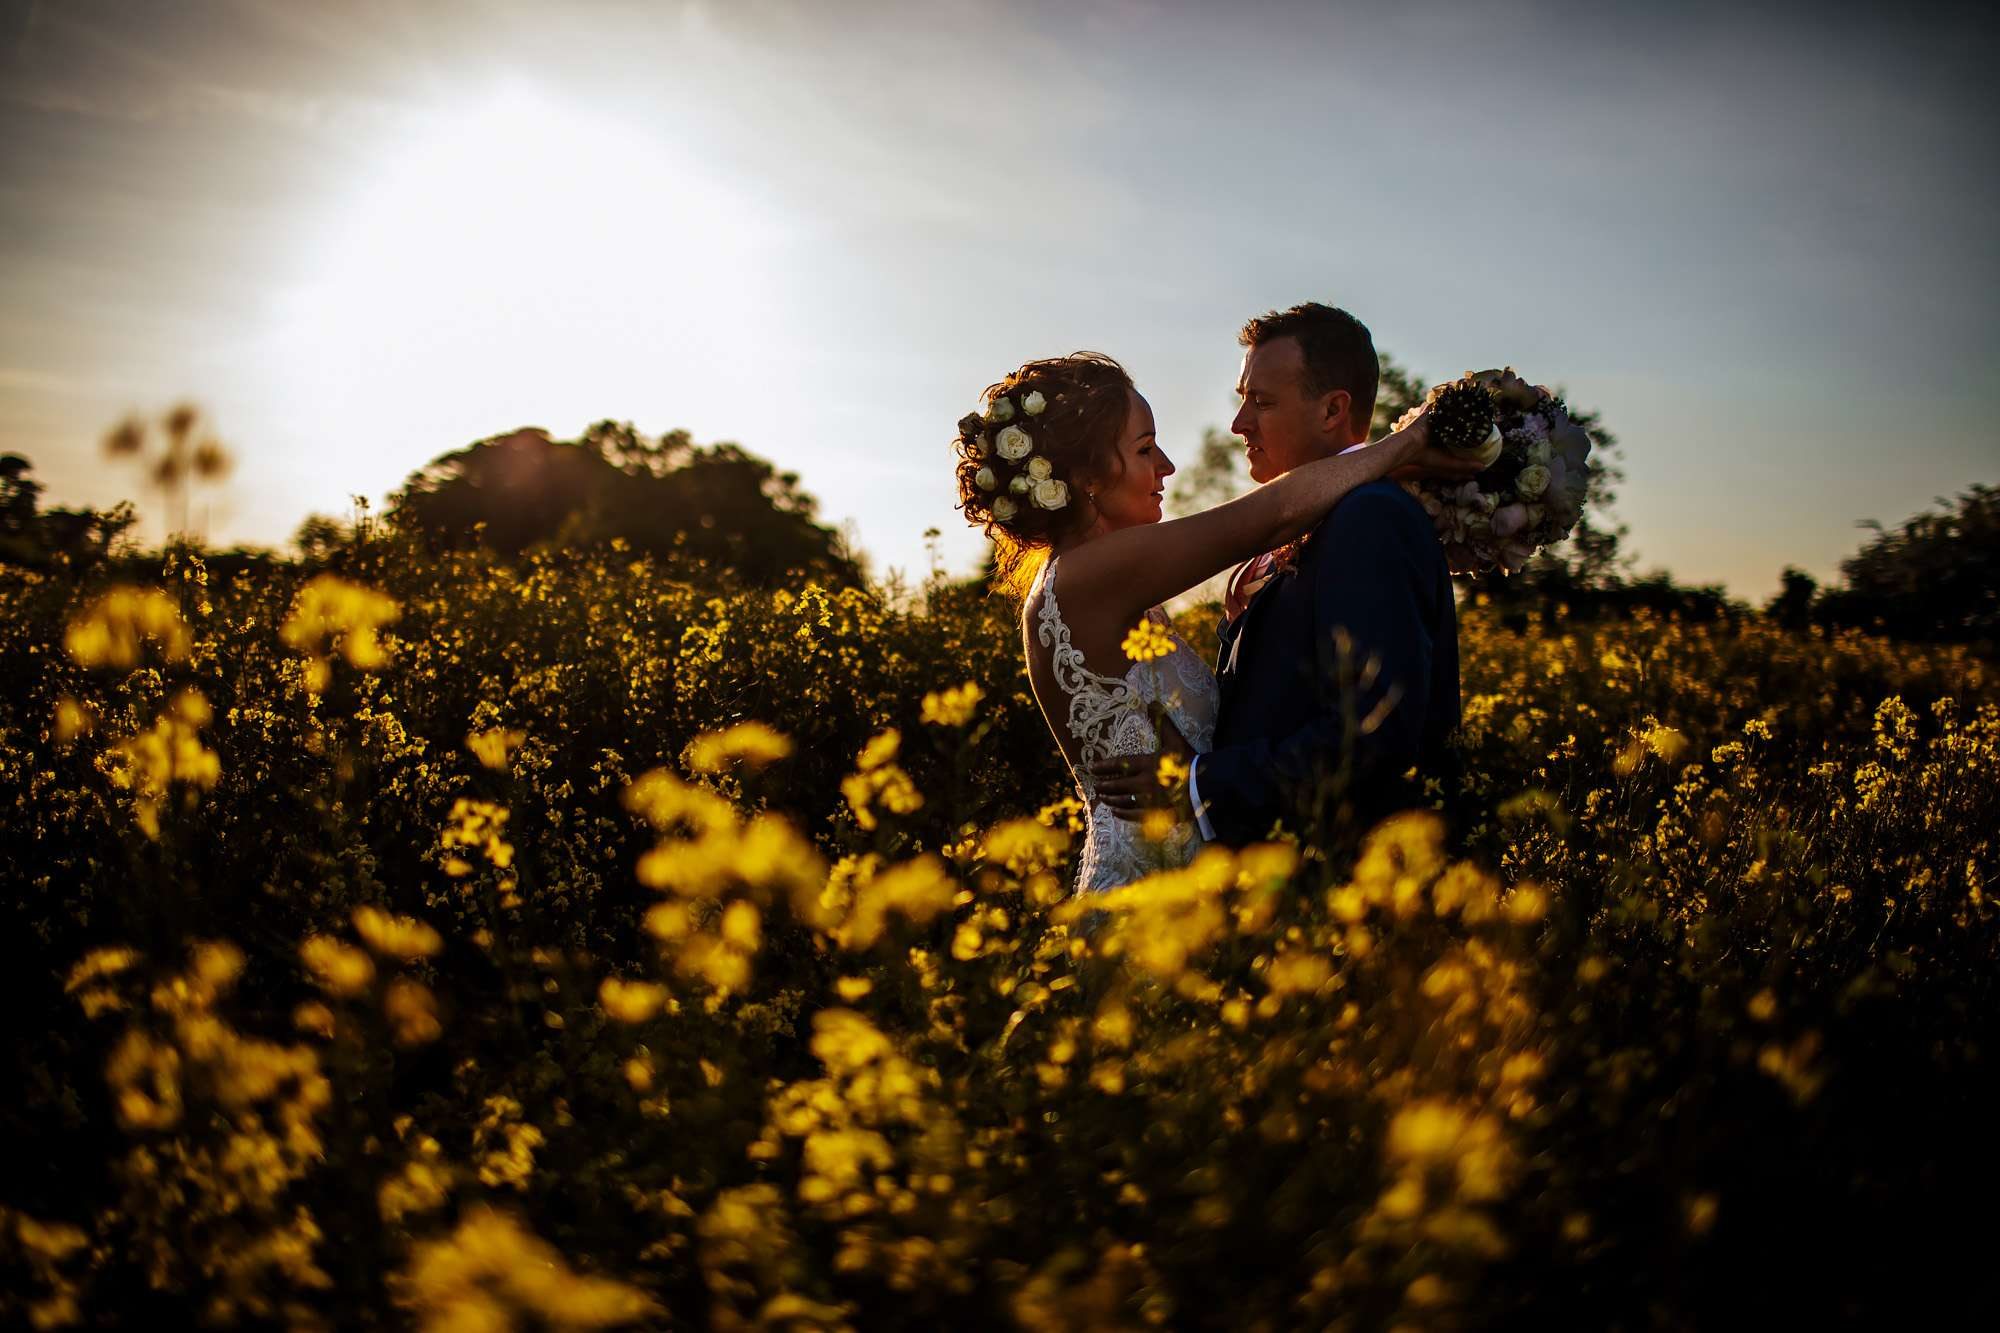 Rapeseed field at sunset with a bride and groom